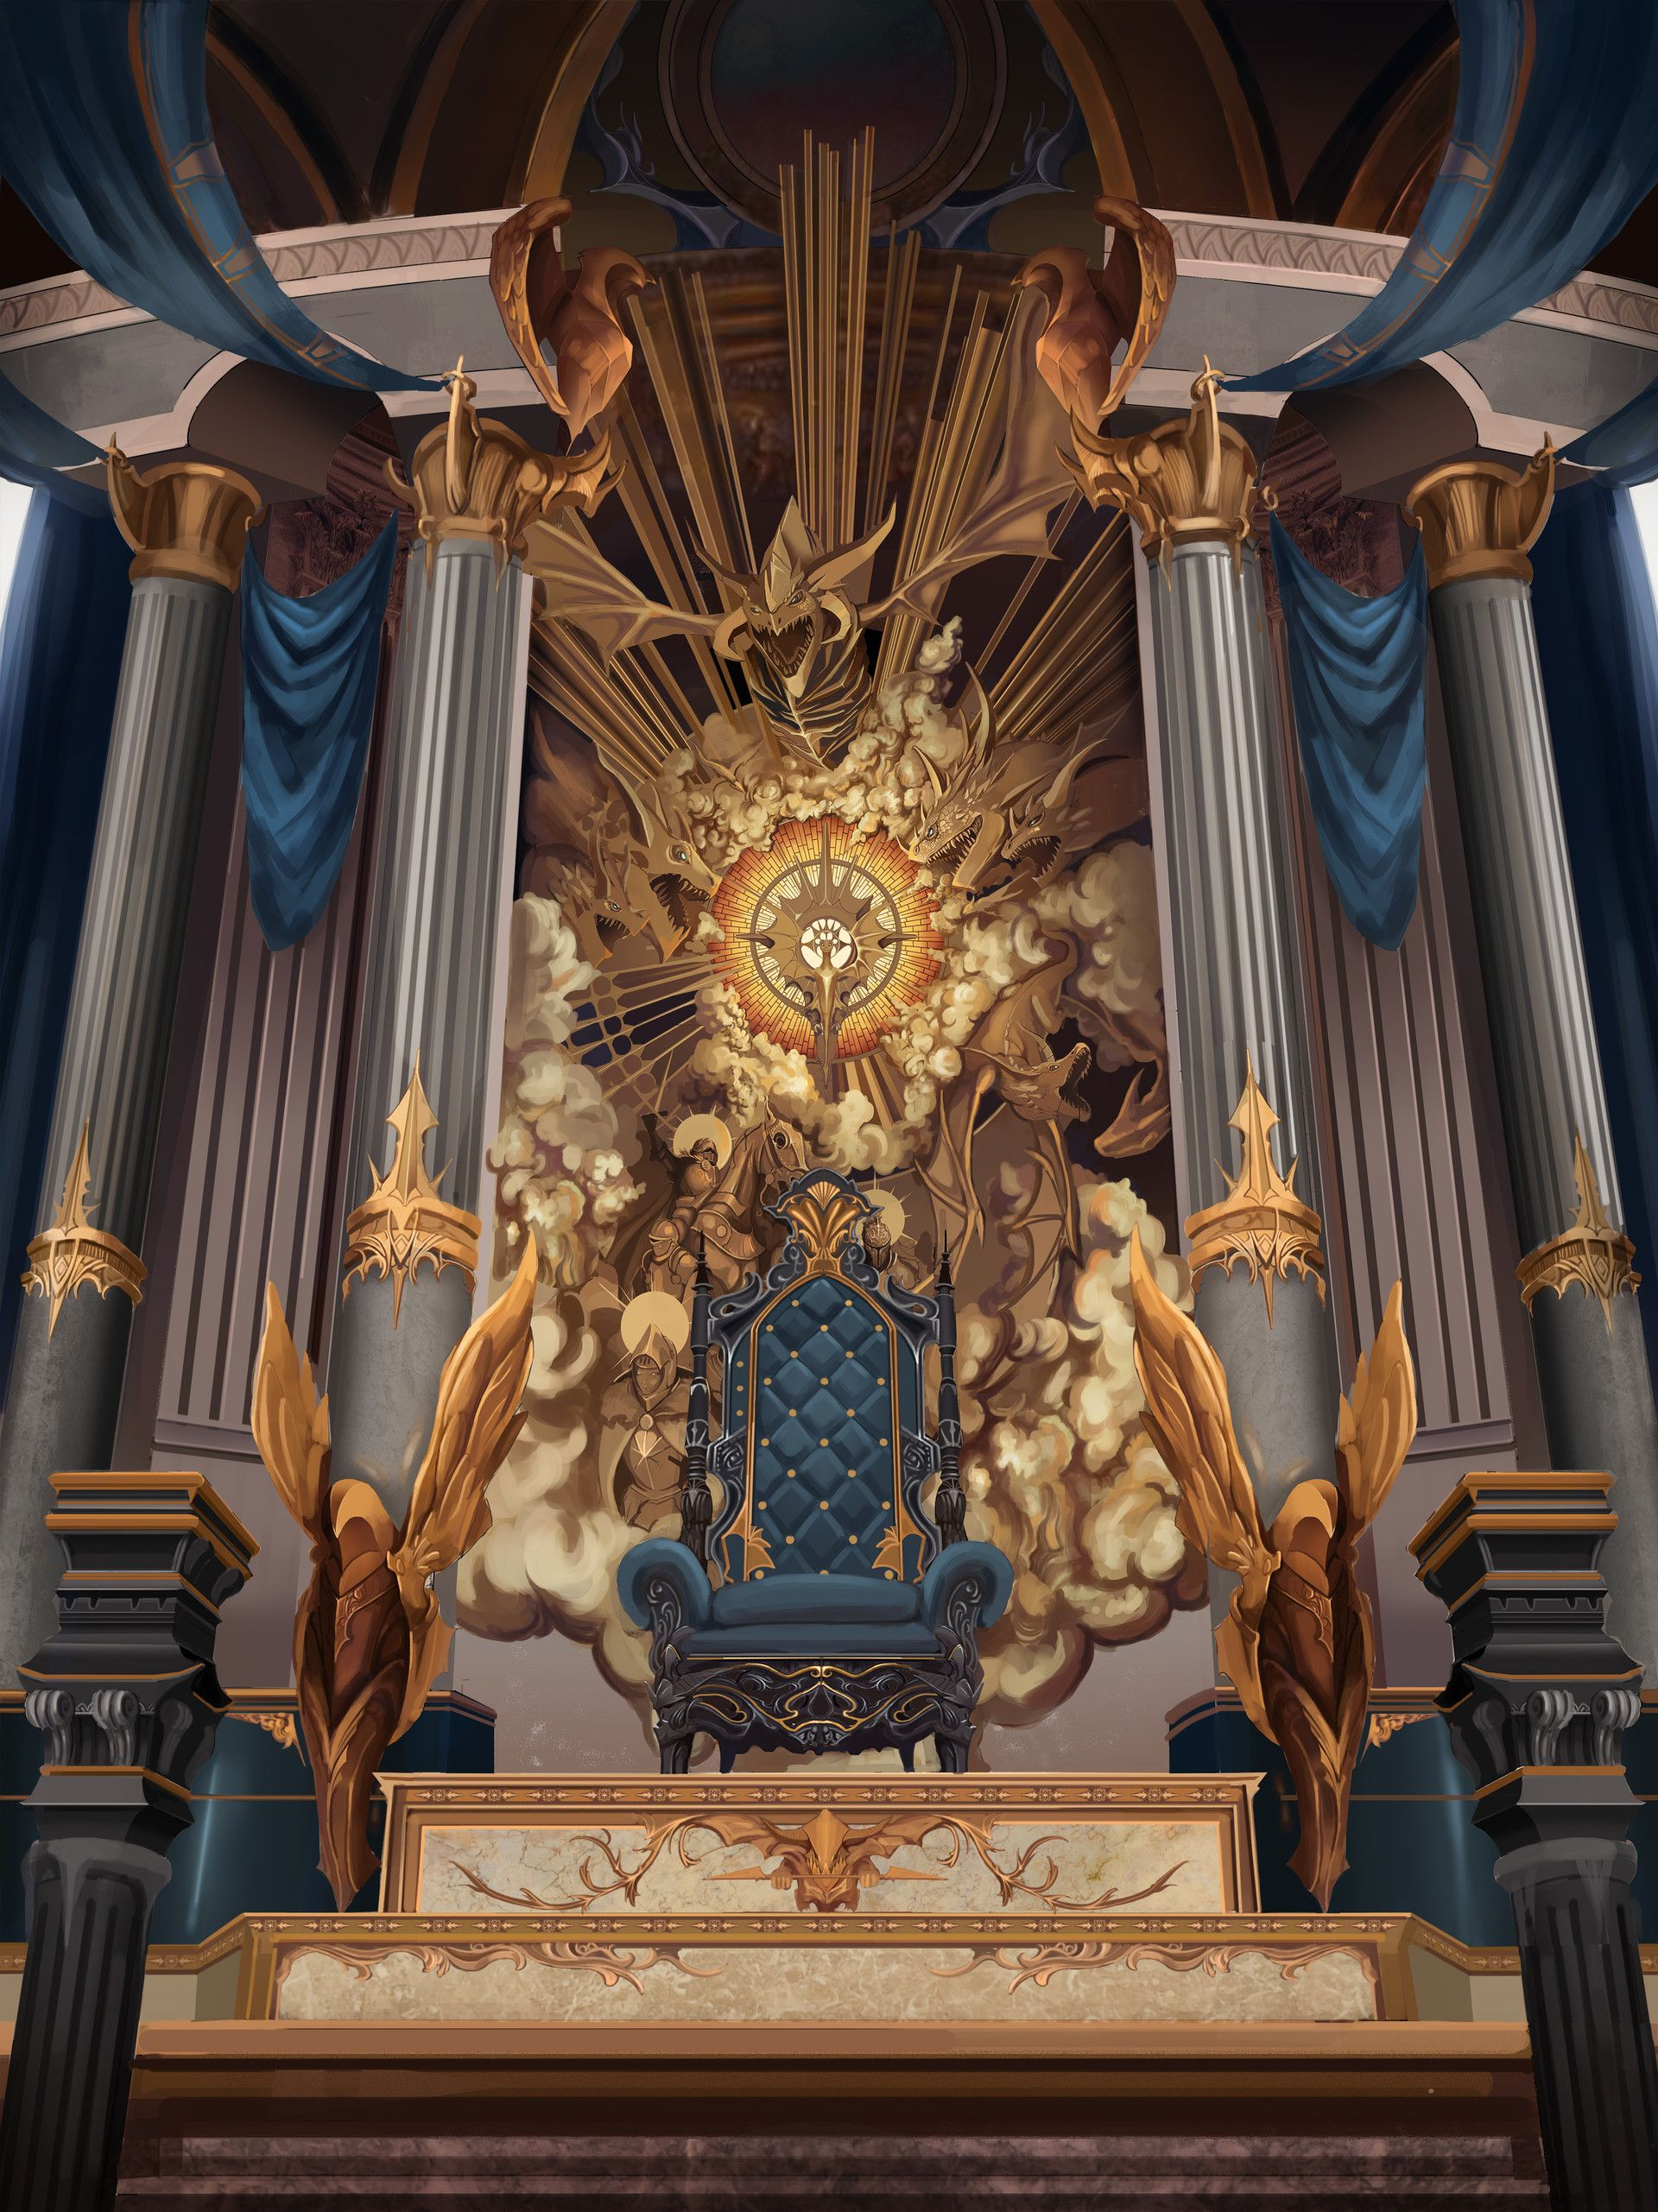 Artstation - Dragon King Throne Kim Soung Min Court Of Thorns And Roses